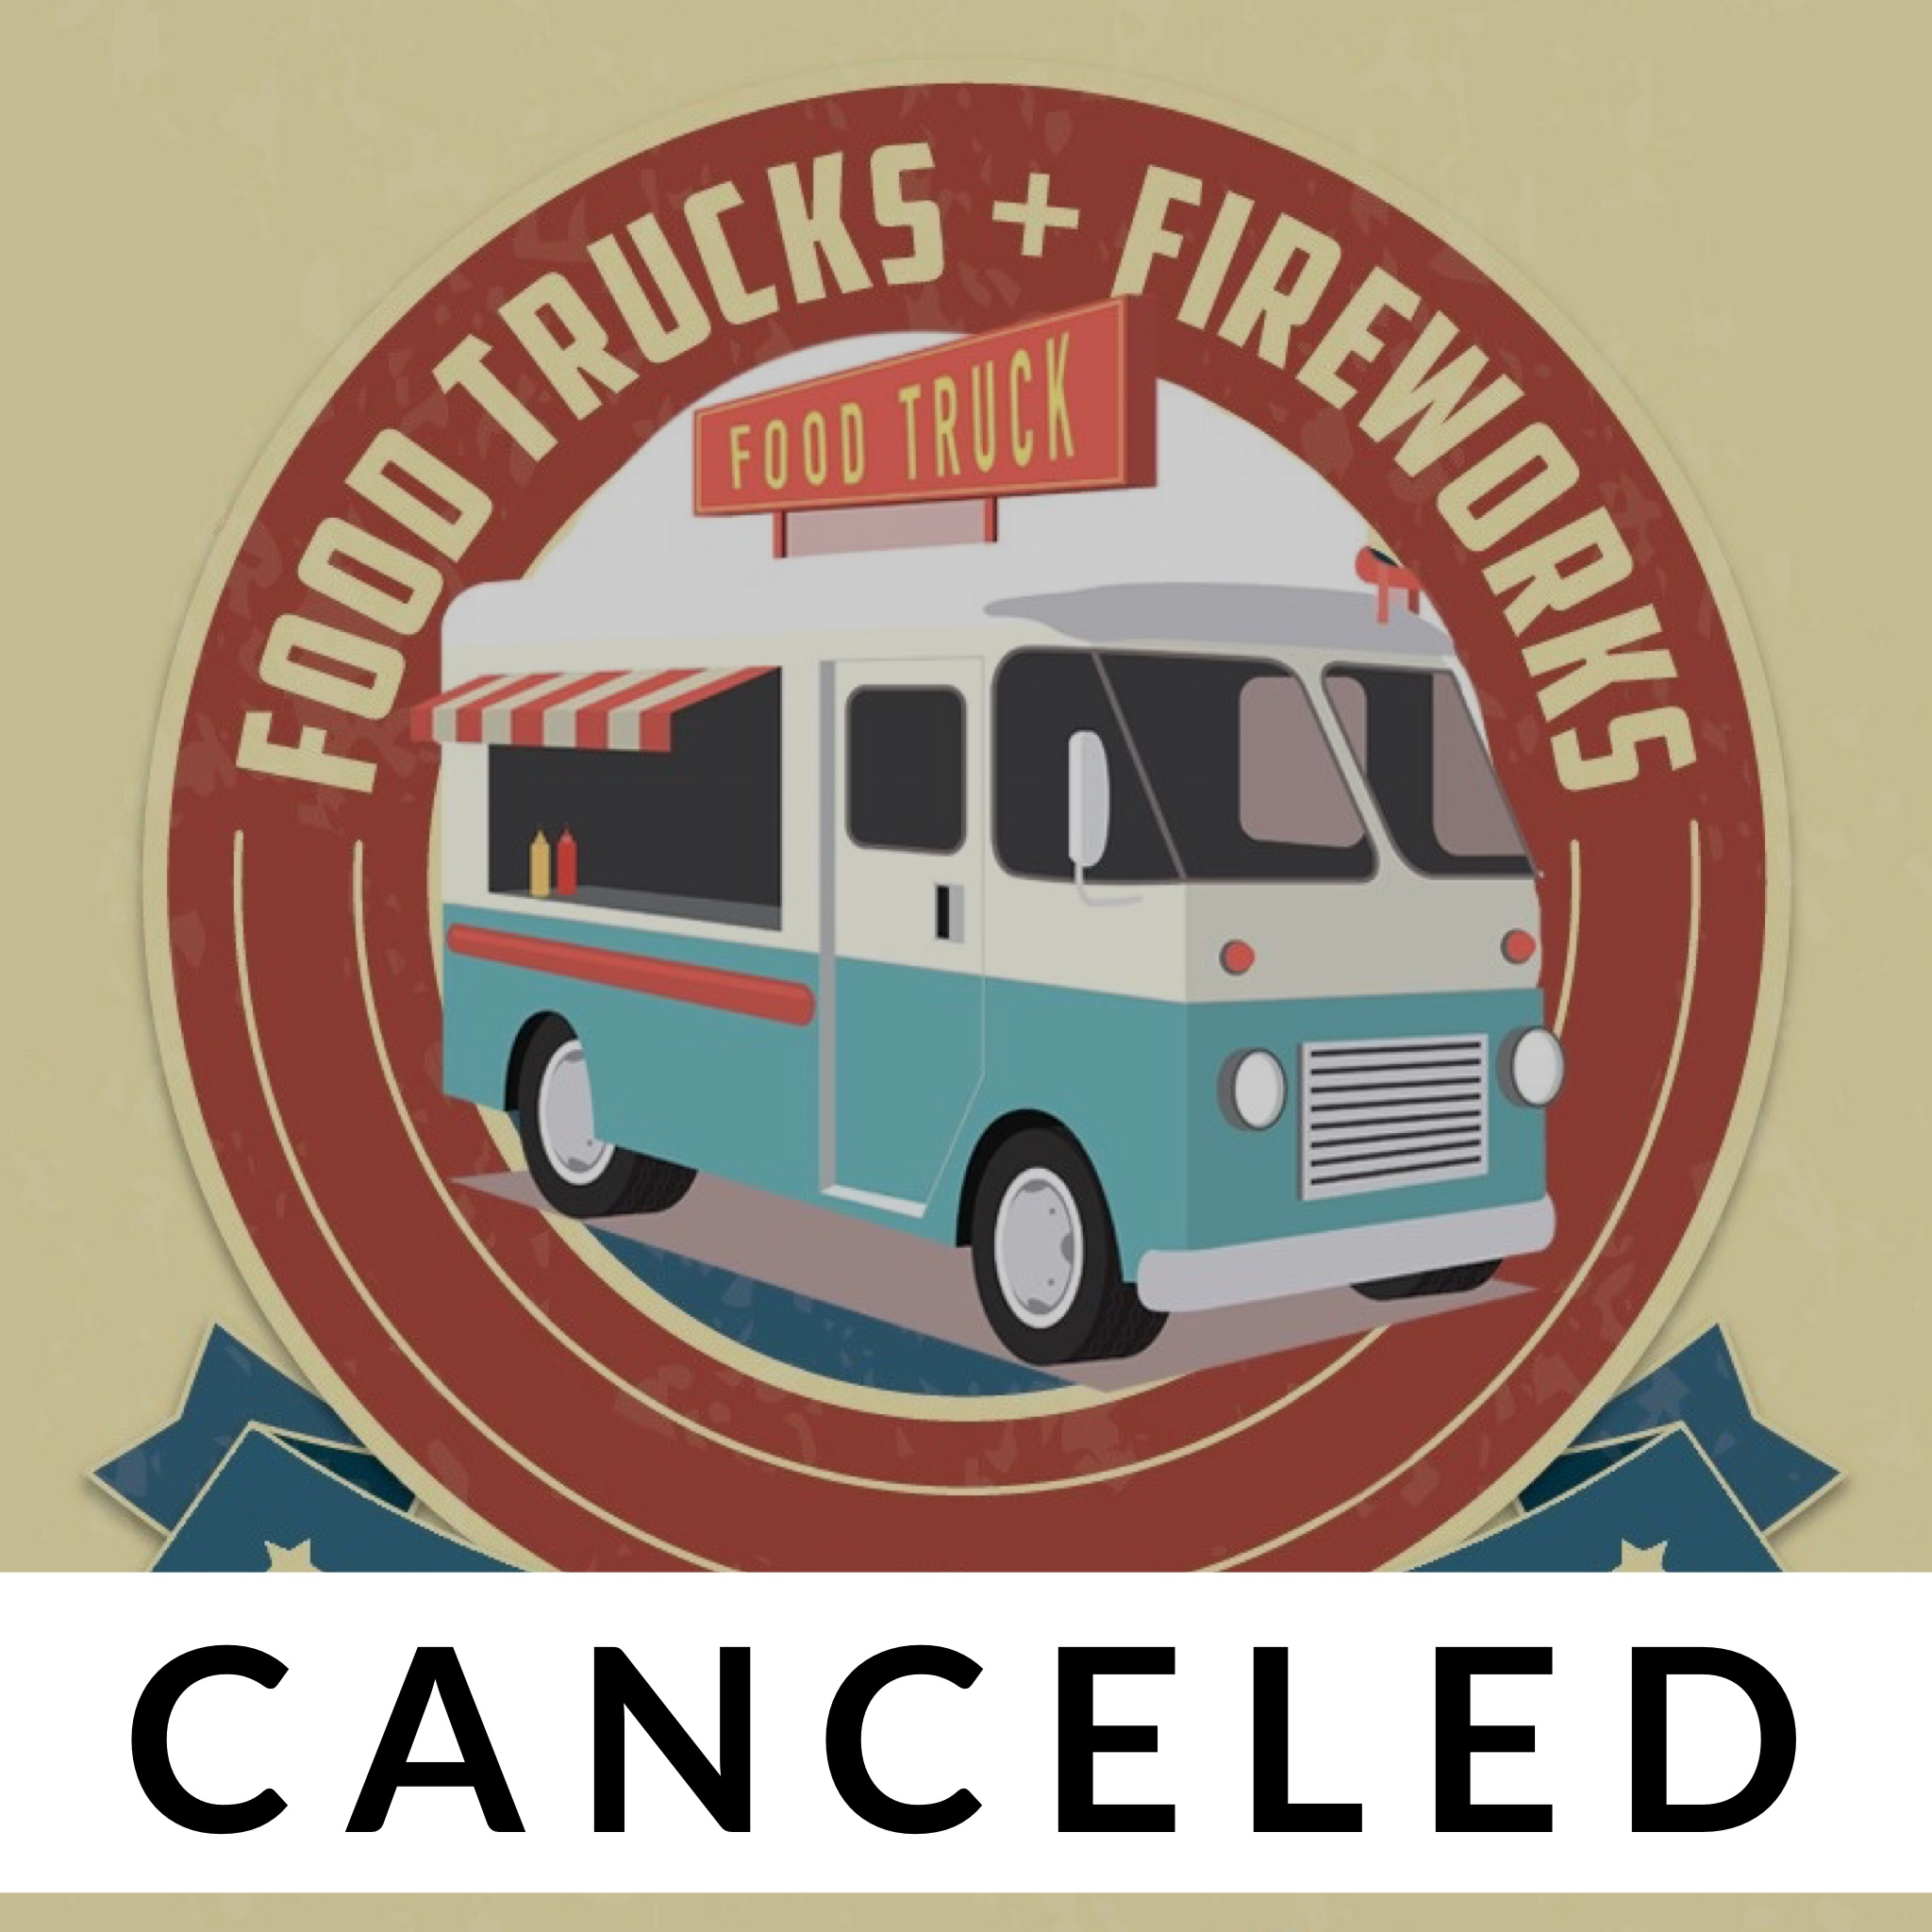 """CANCELED: FOOD TRUCKS & FIREWORKS   This event has been canceled. Please consider using the Home Life Resources in the church lobby to plan a great 4th of July at home.  """"Earlier this year we announced that we were planning a Food Trucks & Fireworks event on our Harlem Road property on Sunday, June 30th to celebrate Independence Day. For this event to be successful we would need no rain, including several days before the event, and significant progress in construction so that we could easily access the land. When I stepped into the Executive Pastor role in March we reevaluated this event in light of the unseasonable rain we had experienced and the subsequent construction delays. As a result, after this evaluation, we determined that the best use of our resources would be to cancel this event. The current weather forecast for this week proves this to have been a prudent decision."""" -Diego Armendariz"""